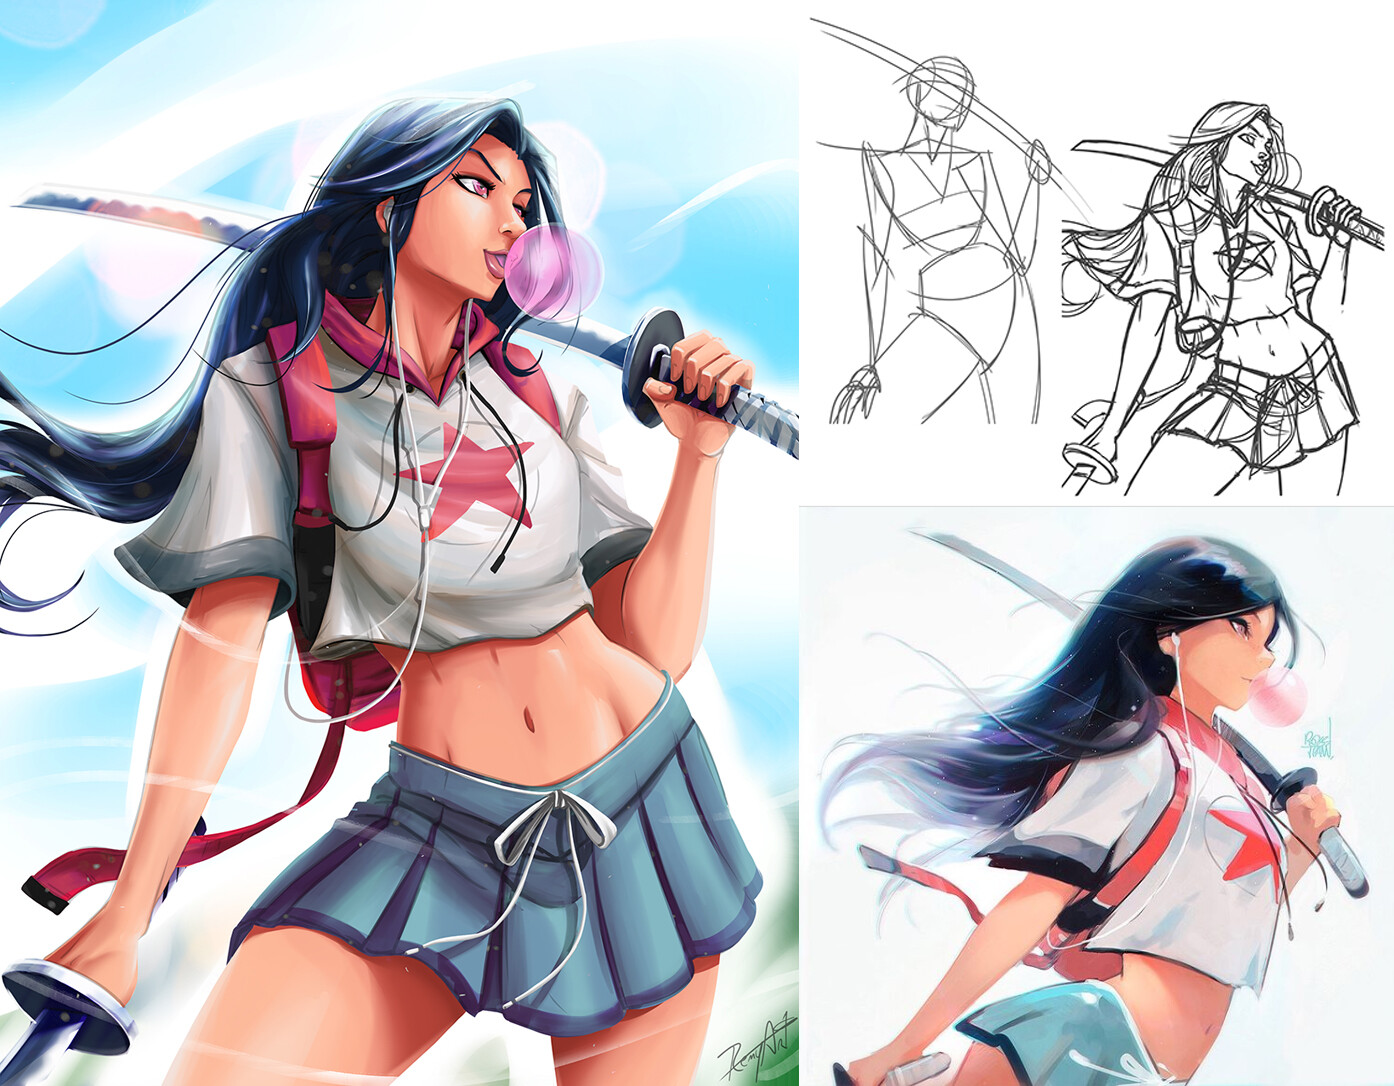 Colored, sketches, and the original drawing from RossDraws